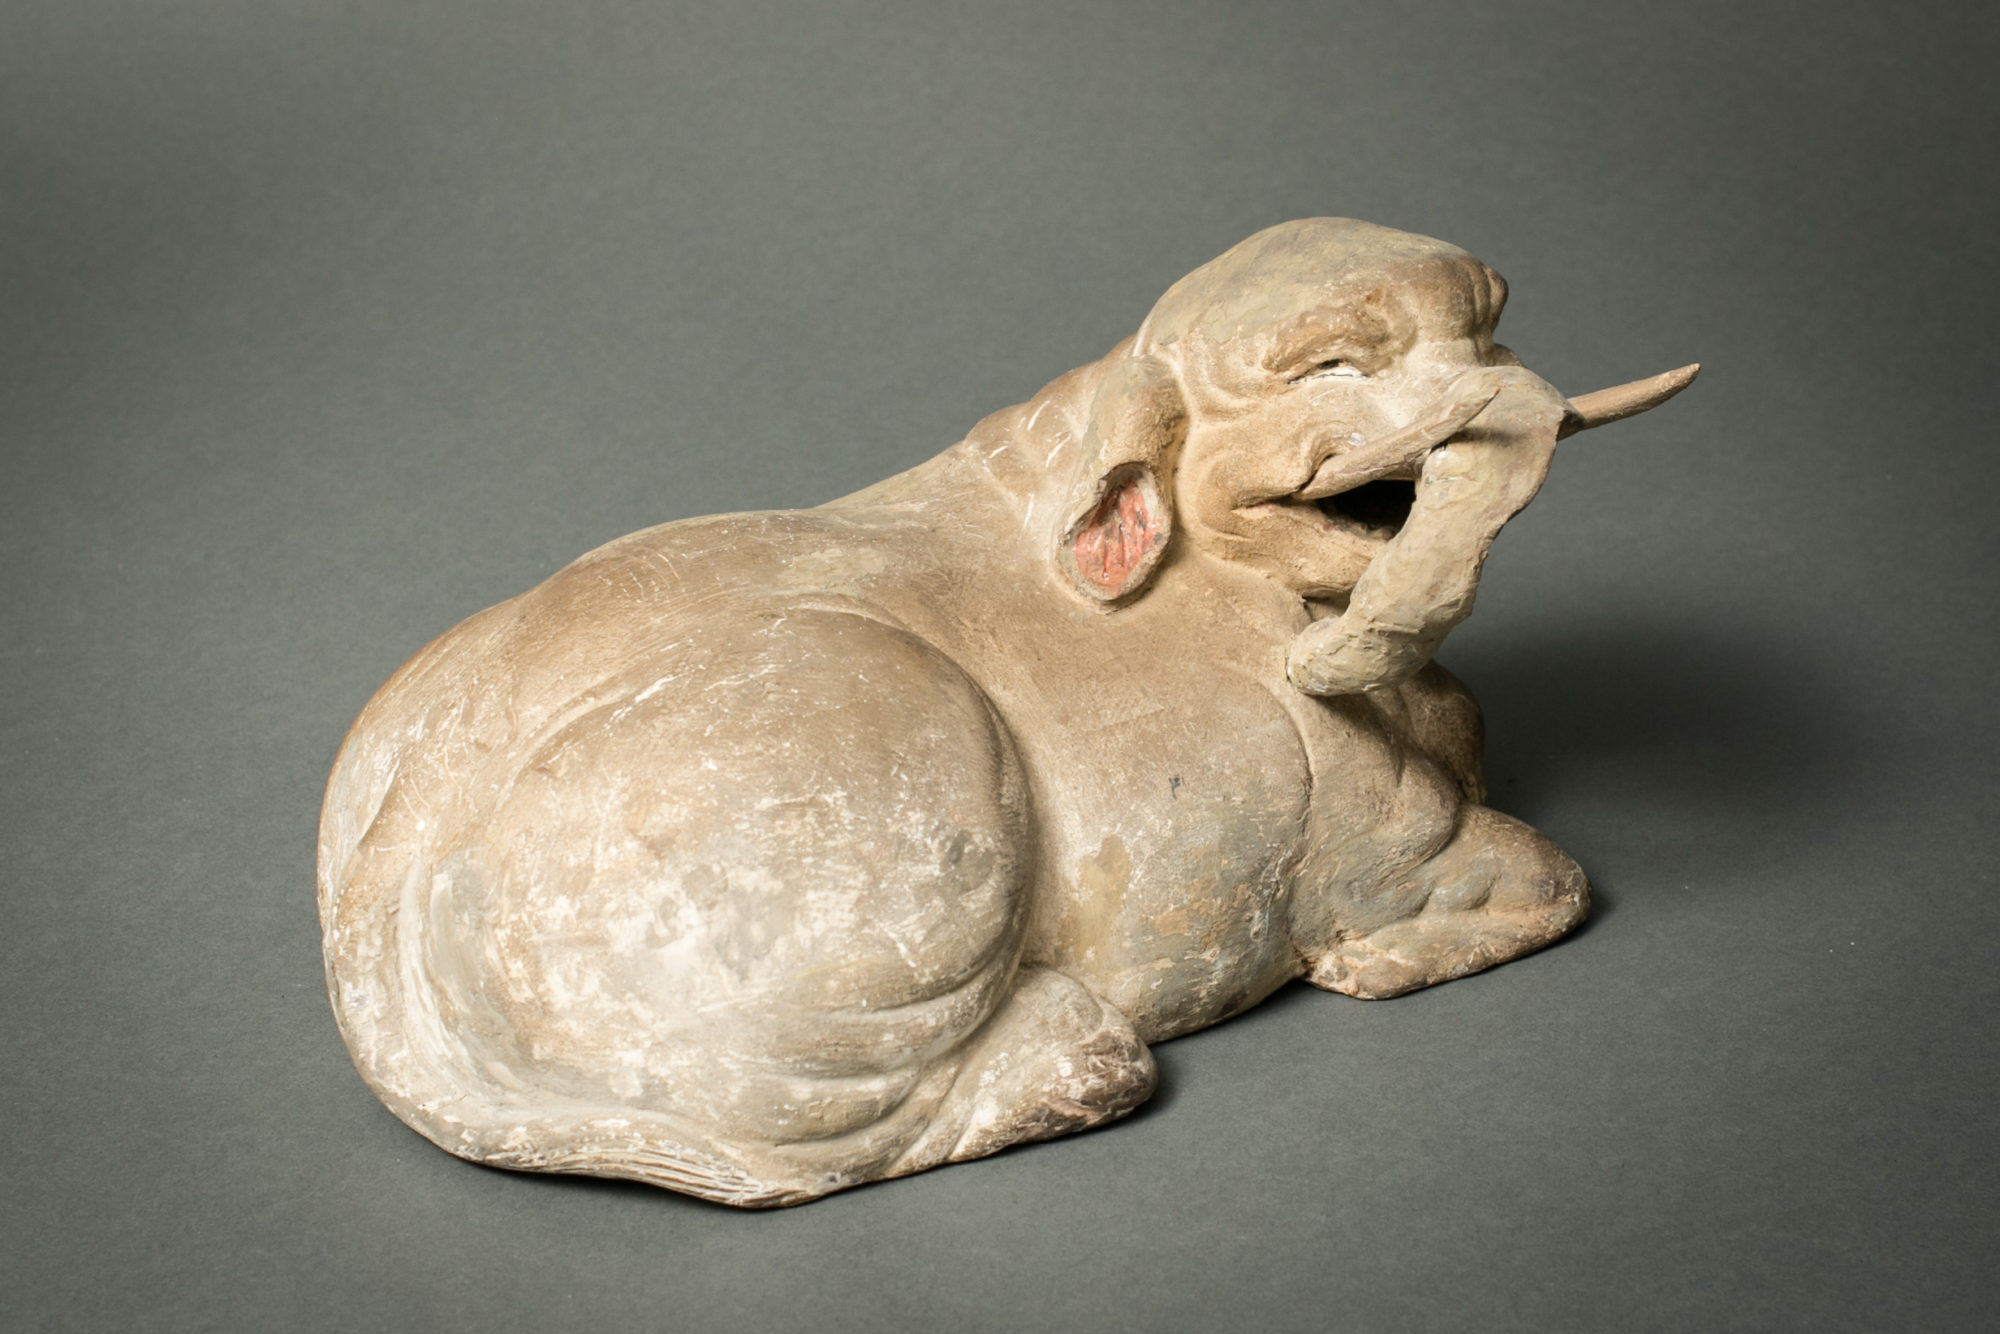 Japanese 18th Century Wood Carving of a White Elephant